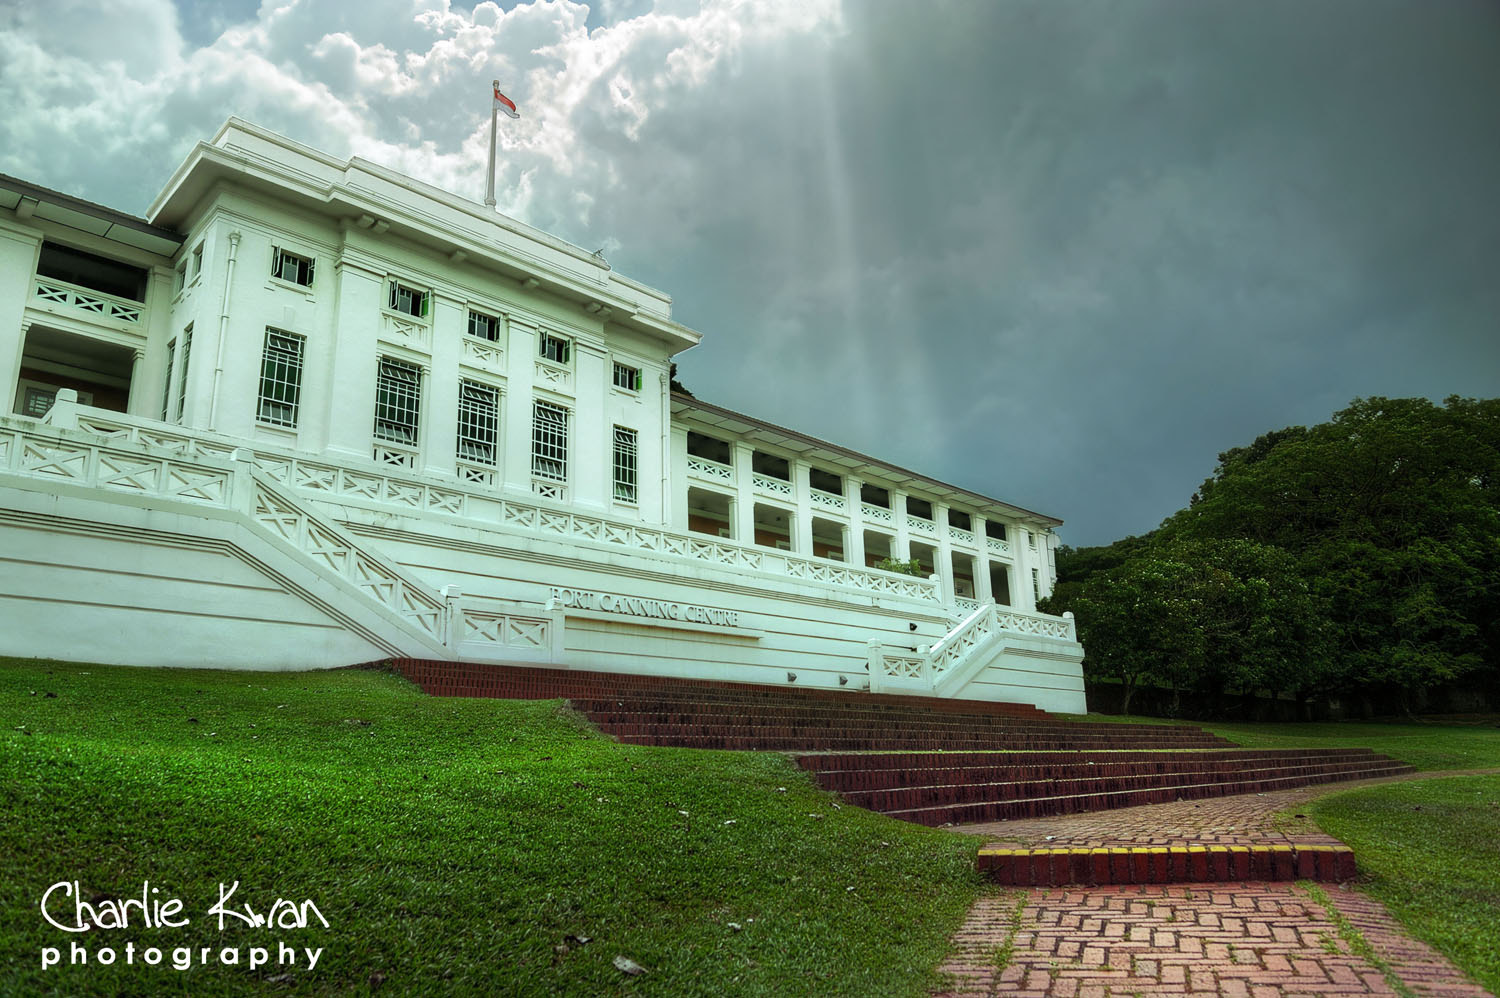 Photograph Fort Canning Centre by Charlie Kwan on 500px